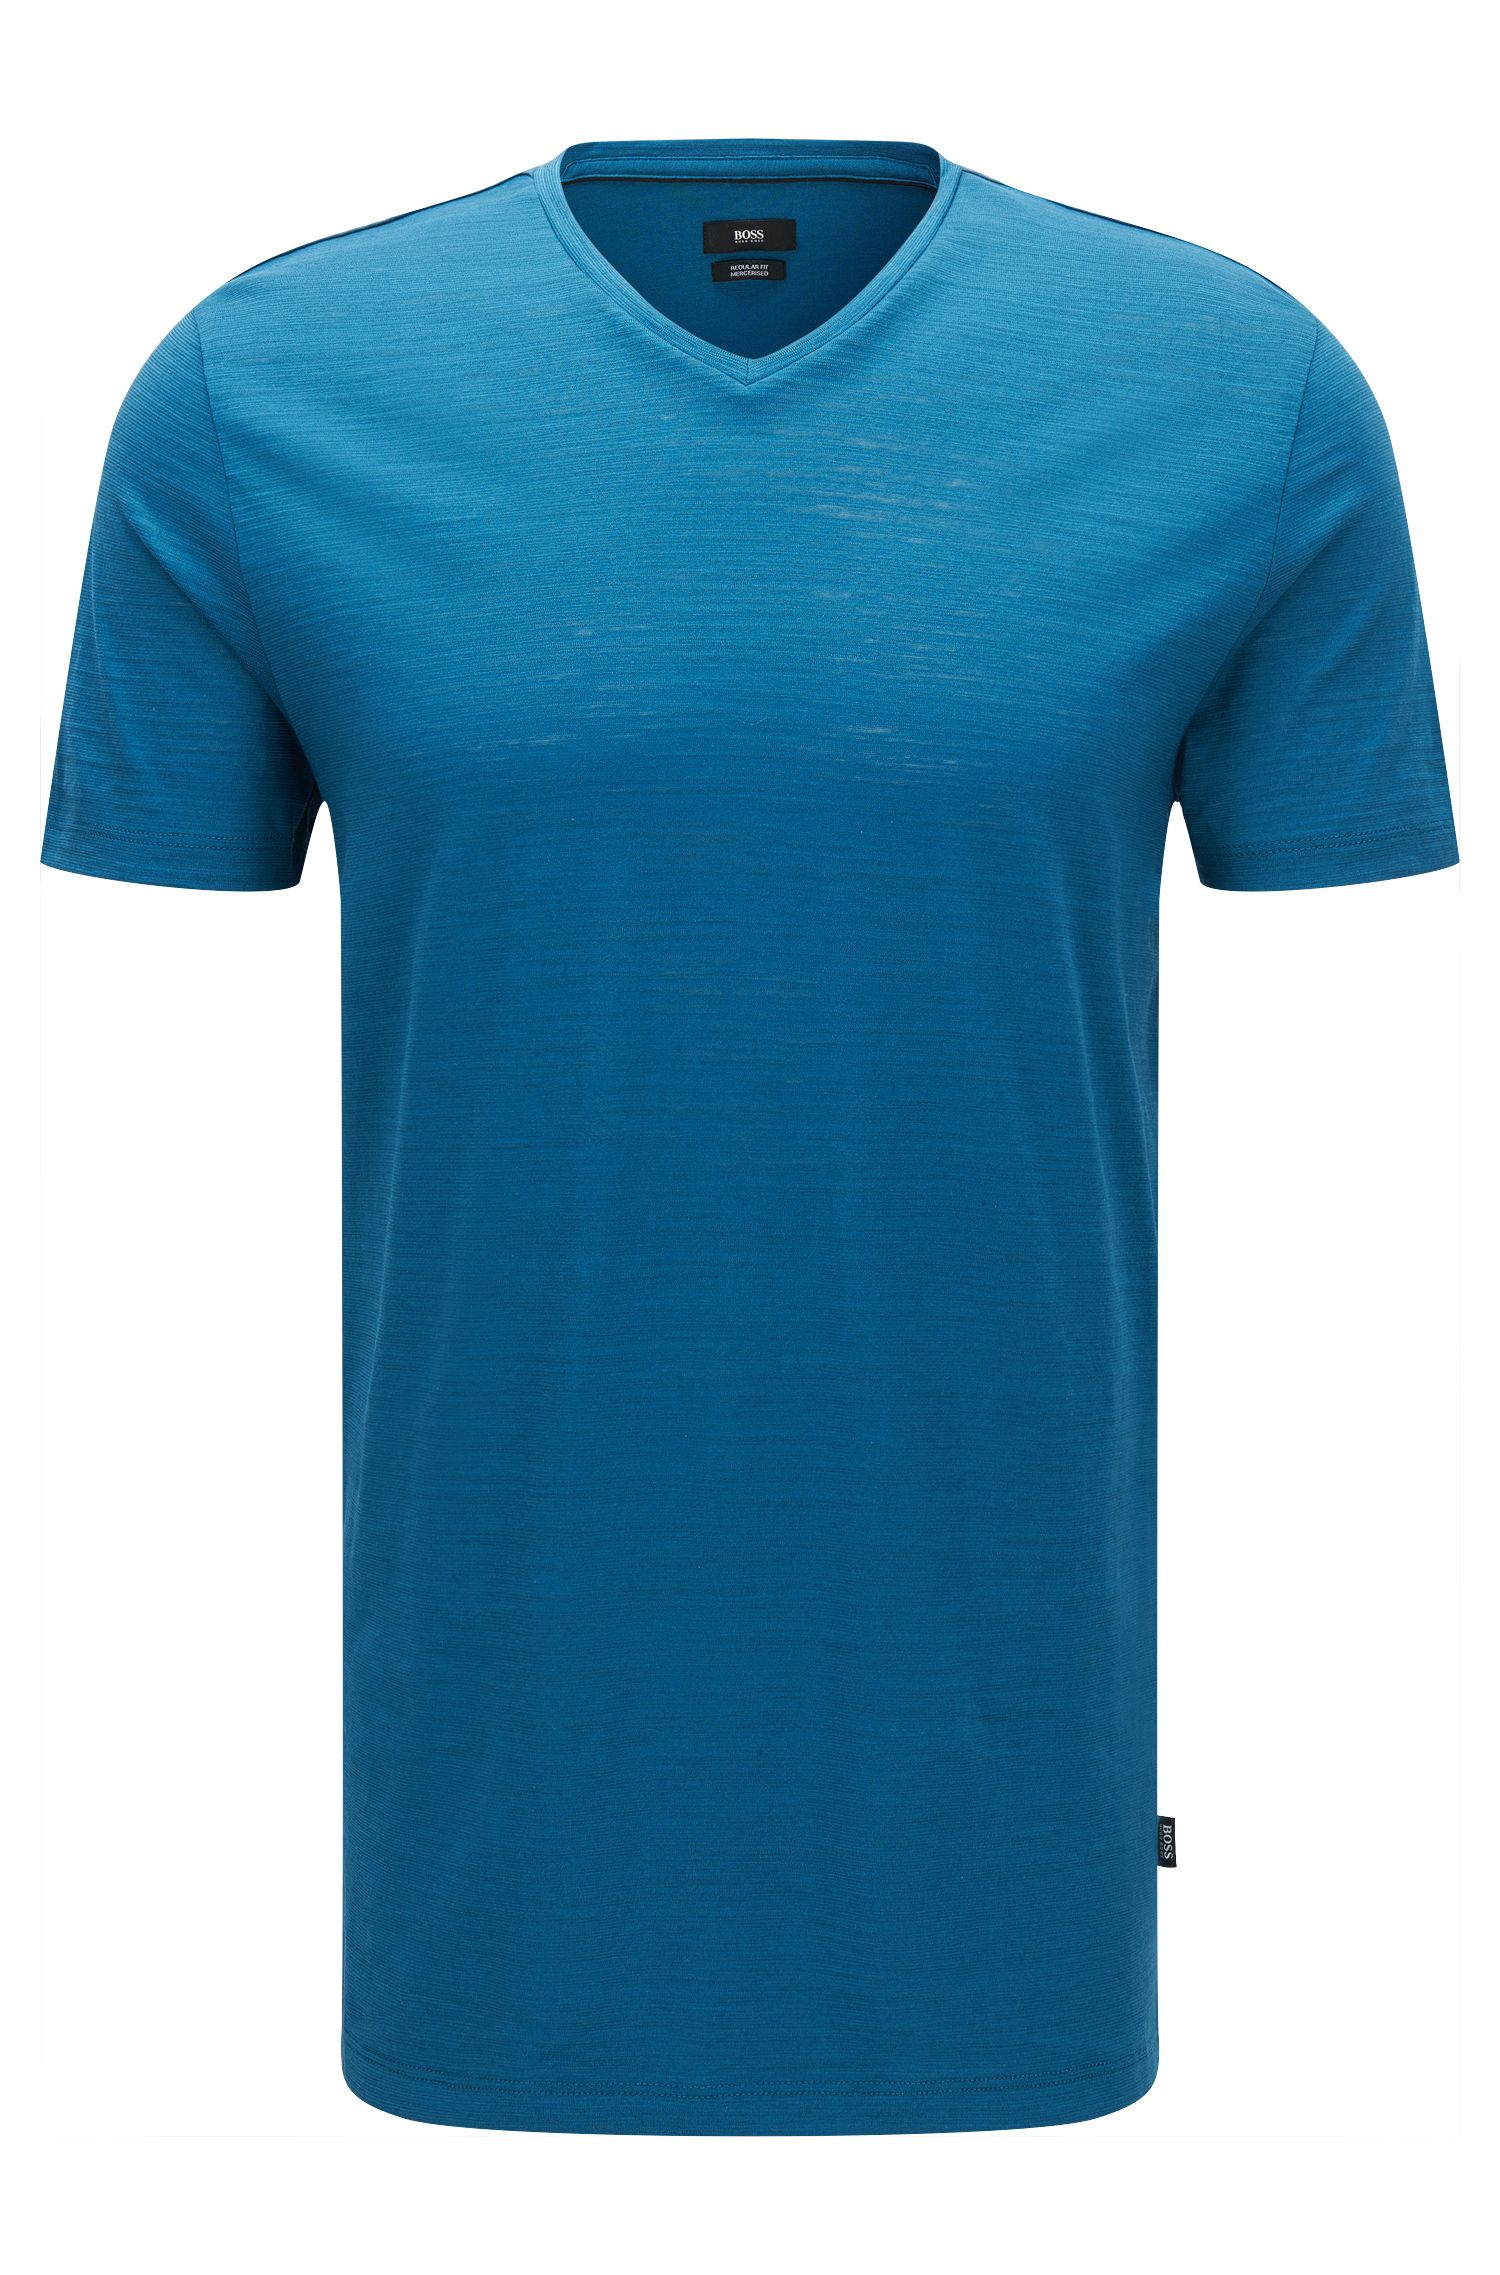 Camiseta regular fit en algodón mercerizado